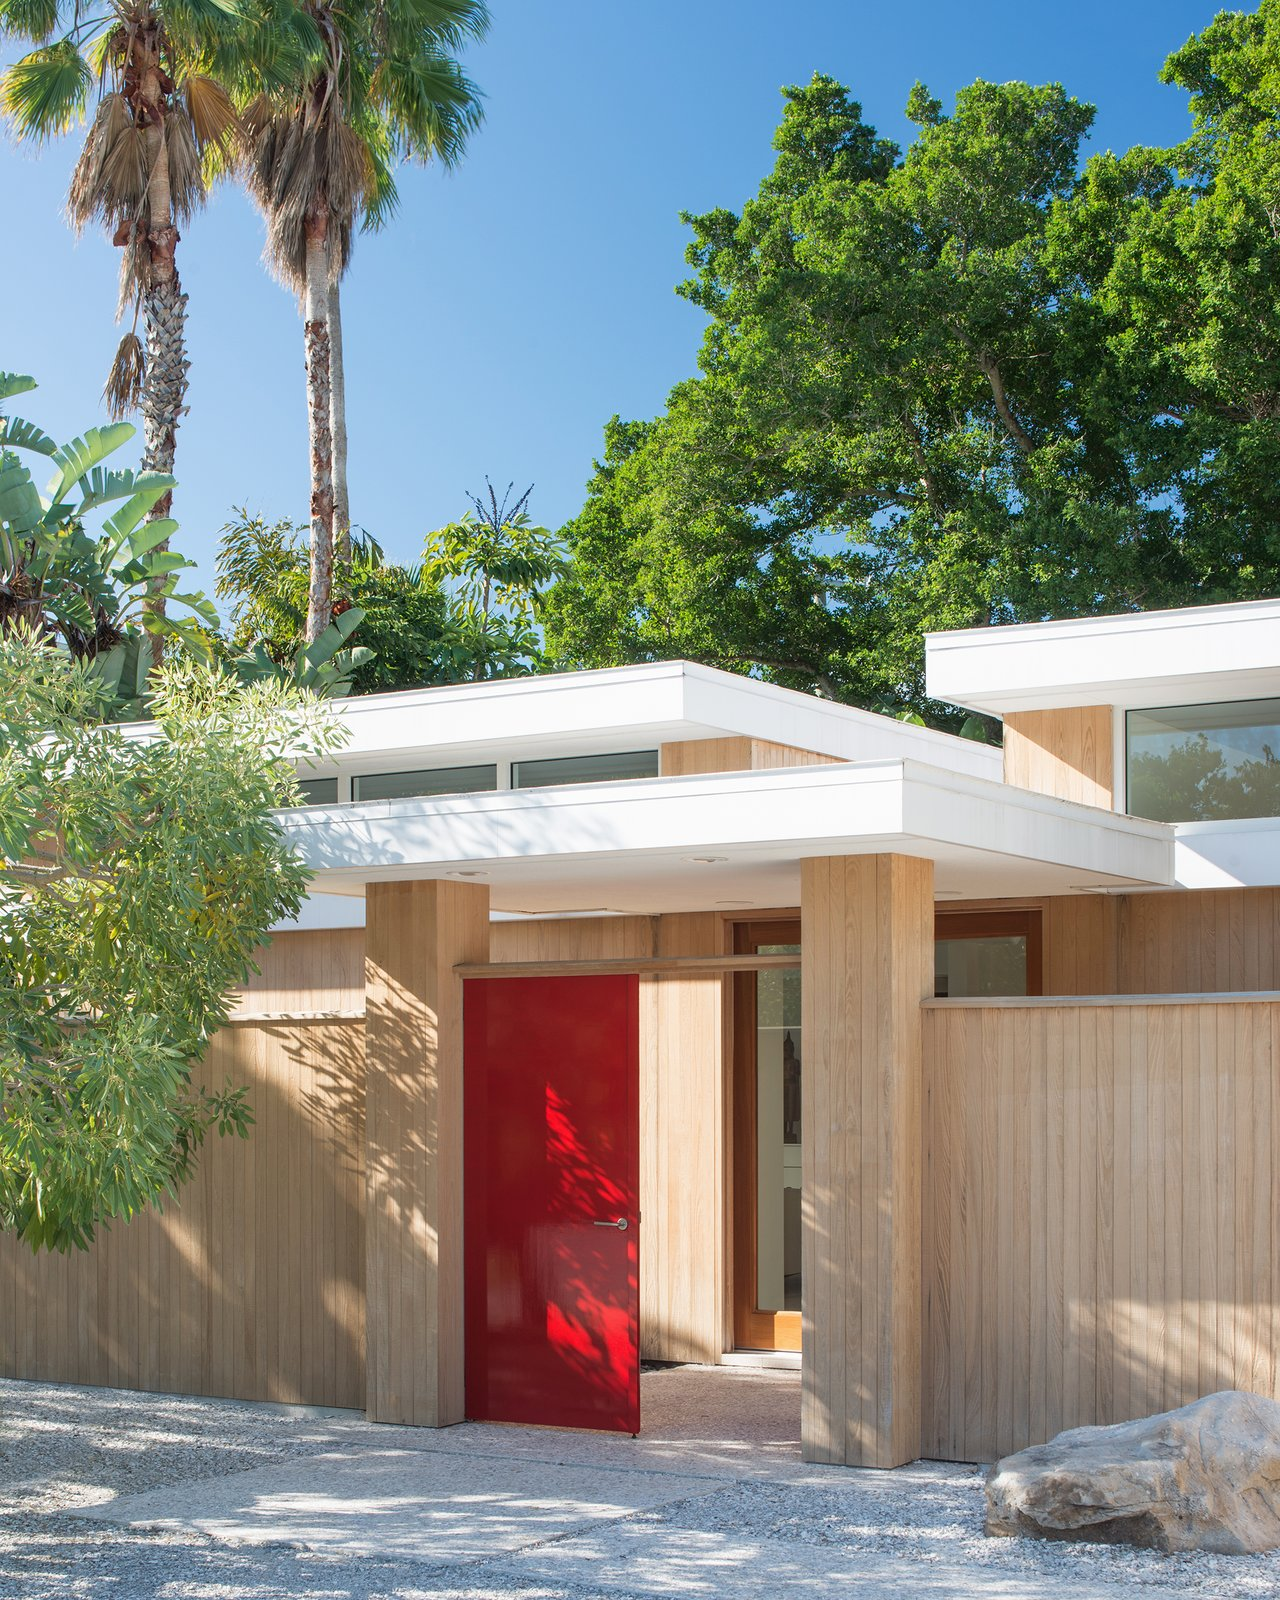 The main entrance of the Pavilion House welcomes guests into the interior courtyard, and then to a second set of doors that enter the main home.  The Pavilion House by Seamus Payne